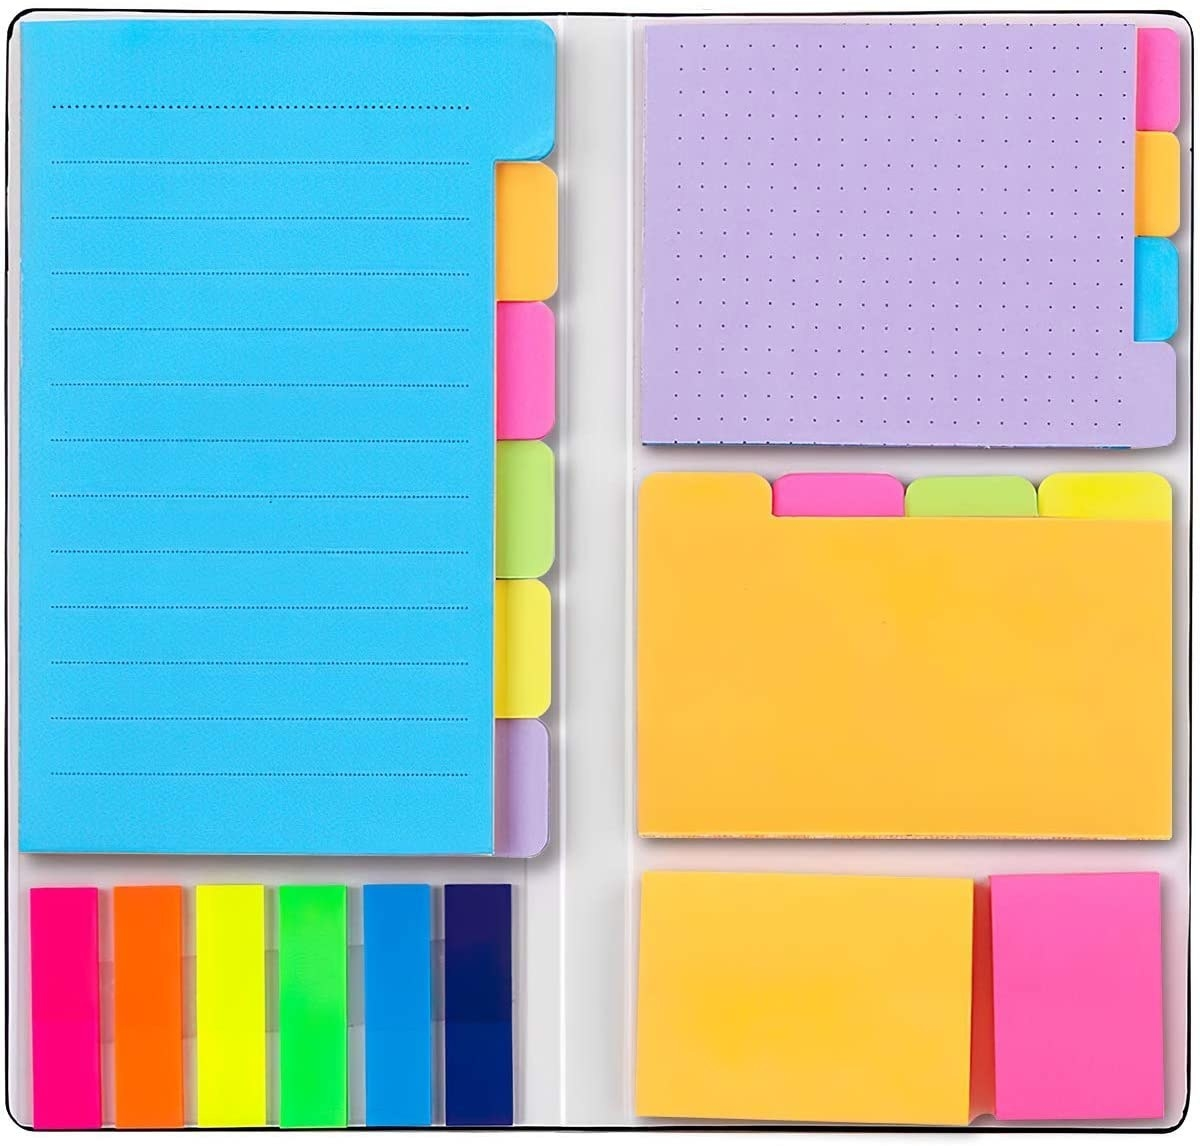 A set with multiple stacks of sticky notes in different sizes and colours